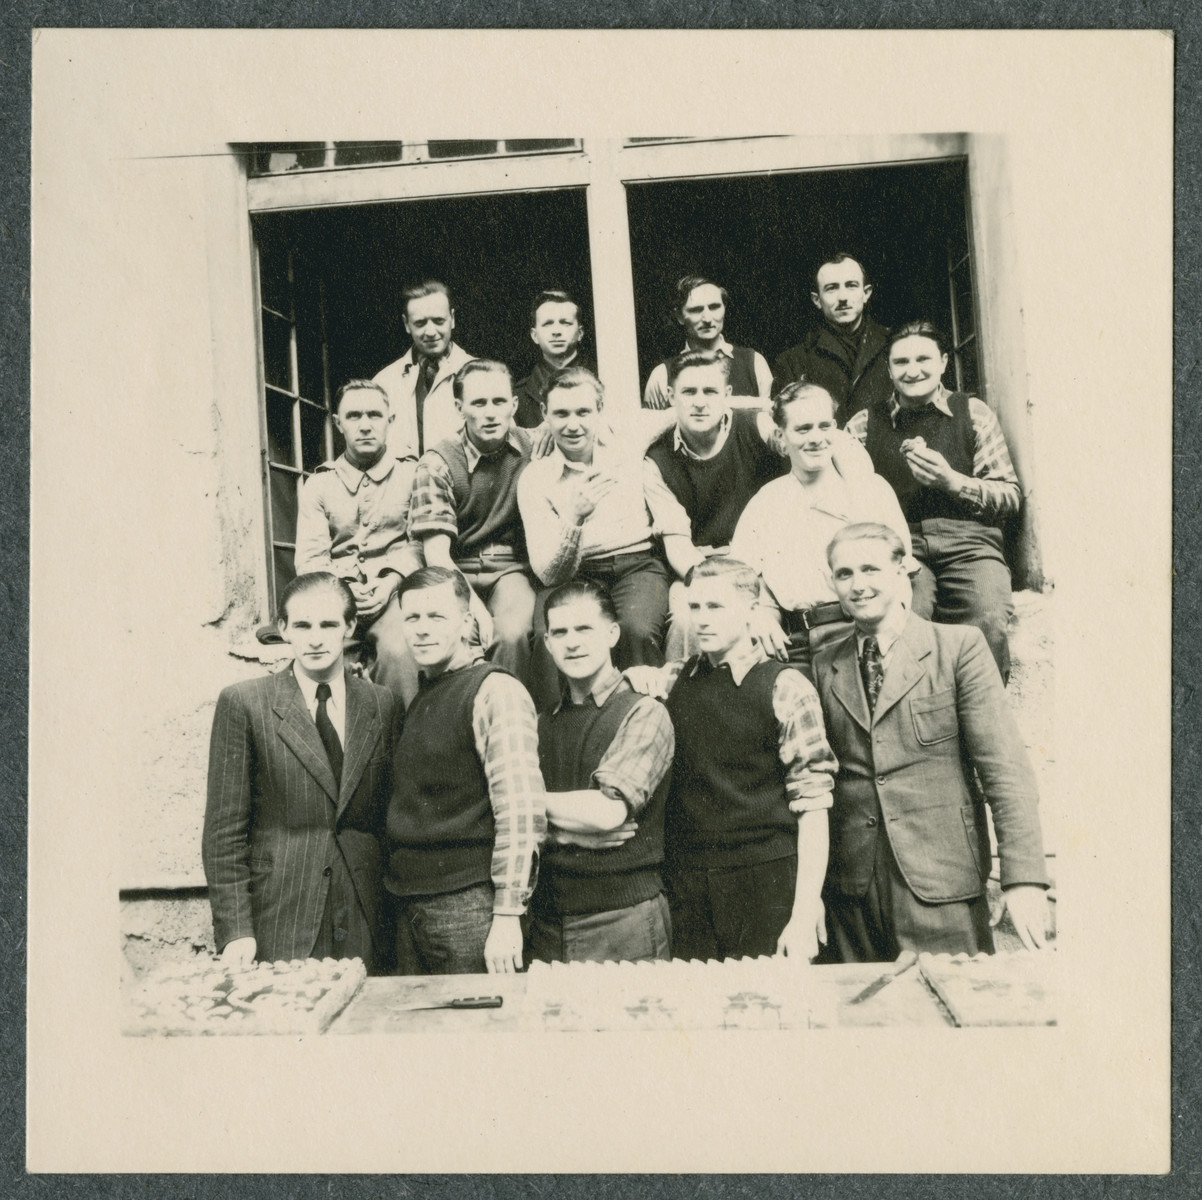 Group portrait of prisoners in the Tittmoning camp.